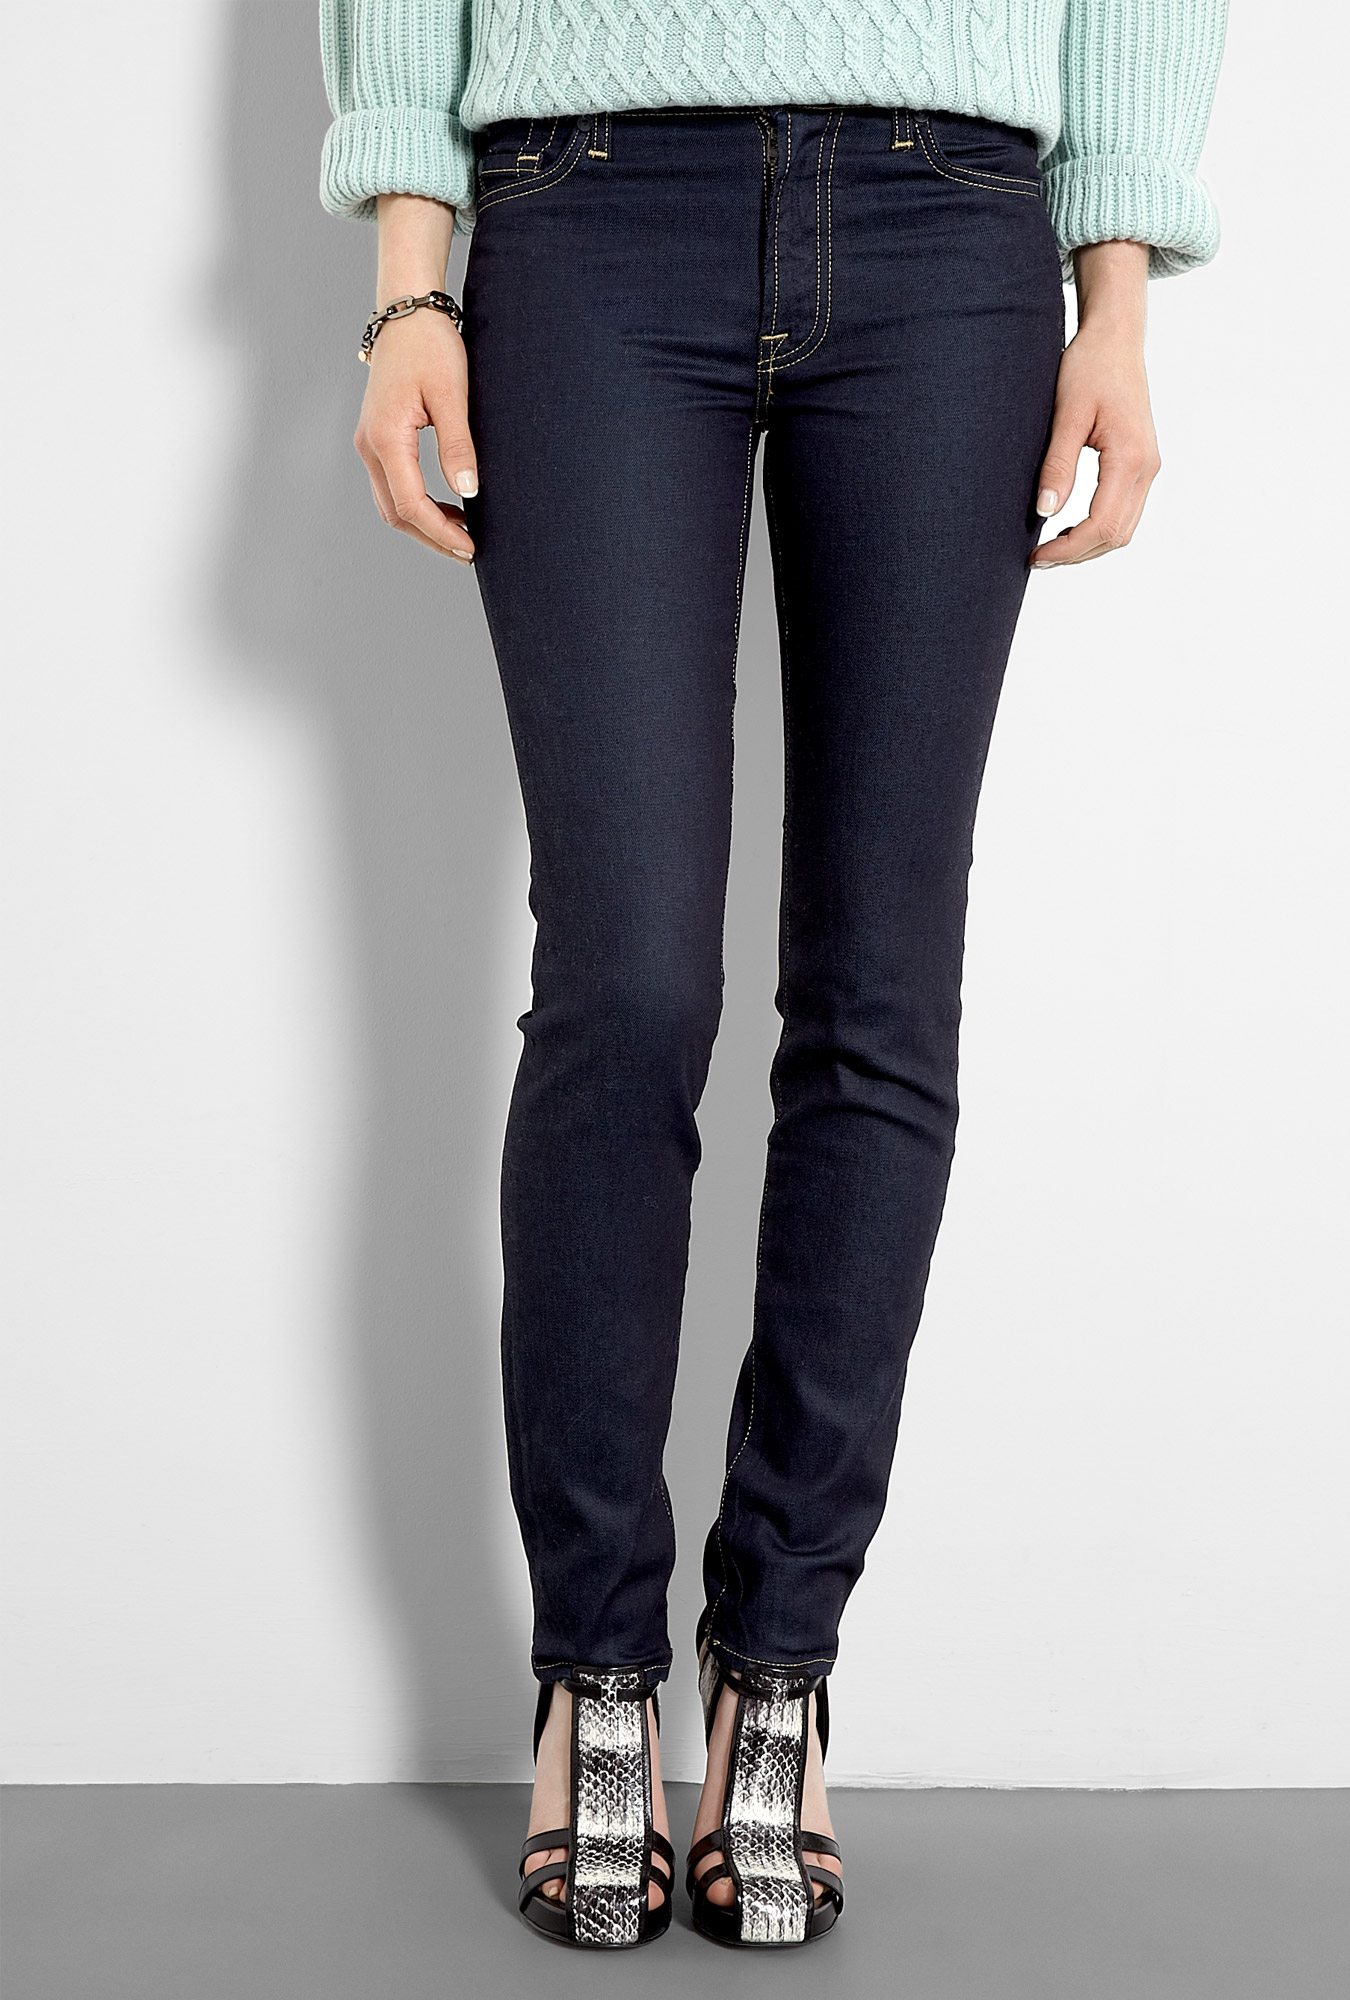 7 for all mankind blue orchid midrise roxanne skinny jeans. Black Bedroom Furniture Sets. Home Design Ideas